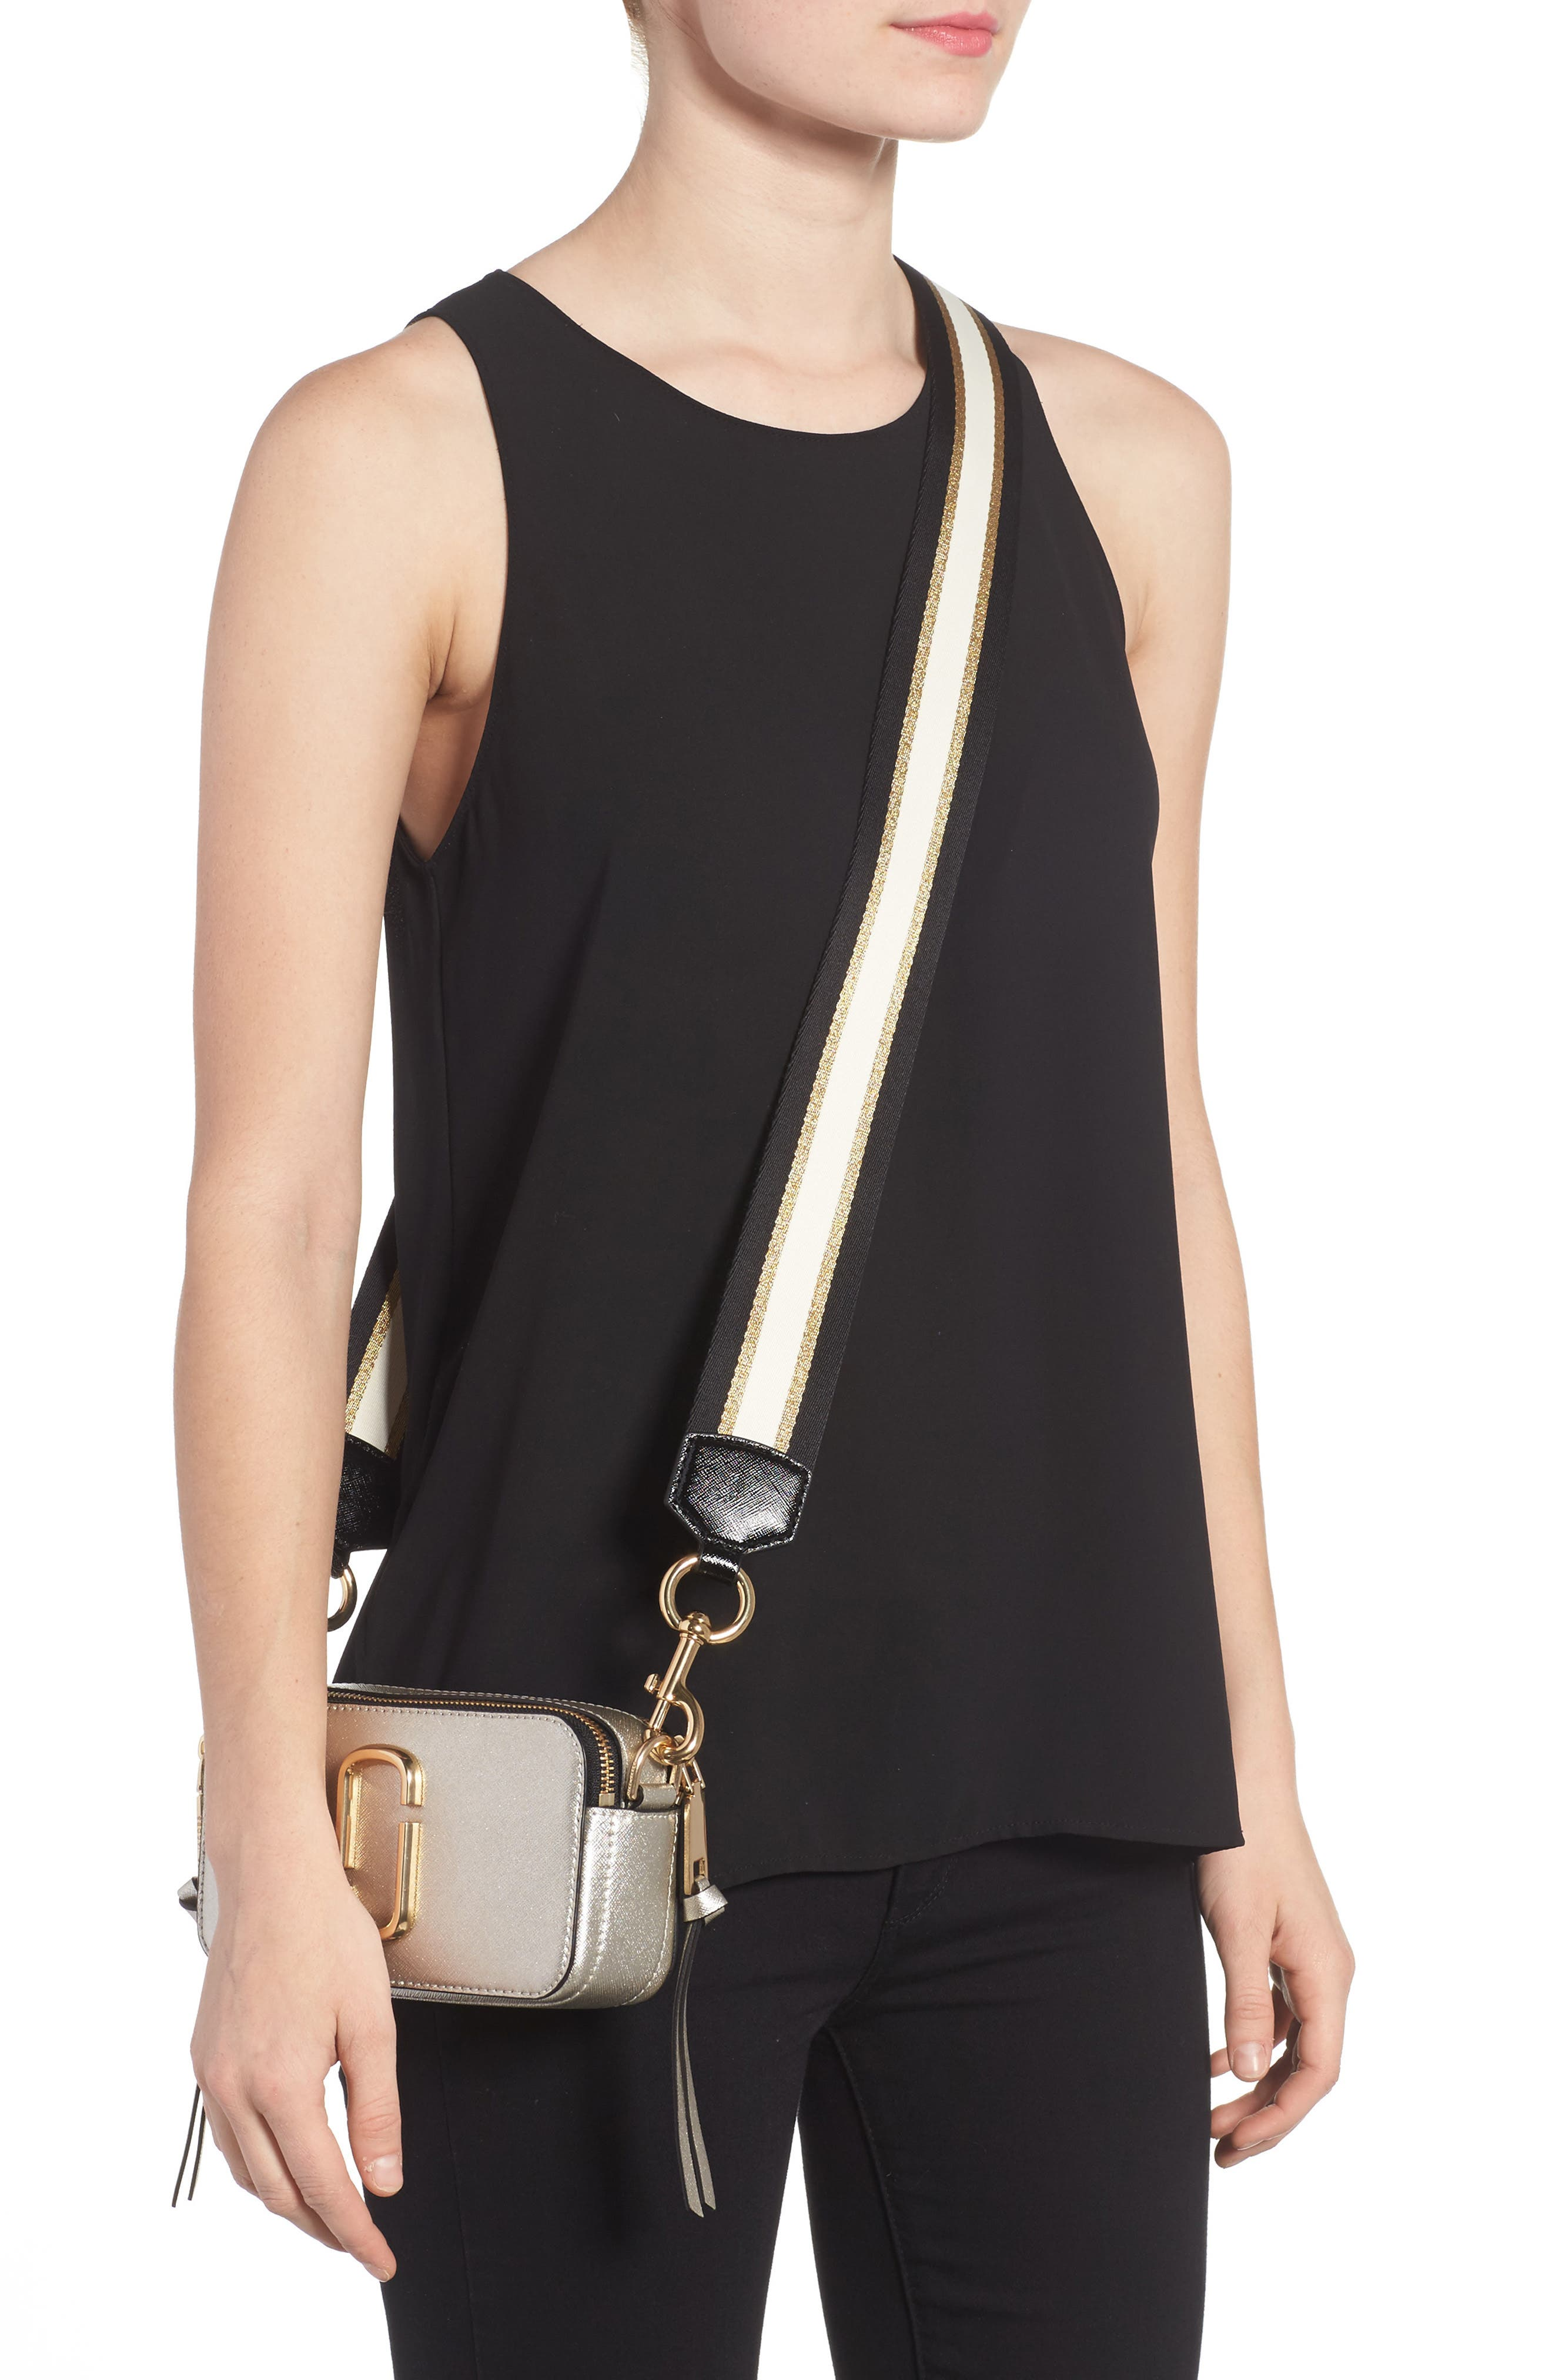 Snapshot Leather Crossbody Bag,                             Alternate thumbnail 2, color,                             048